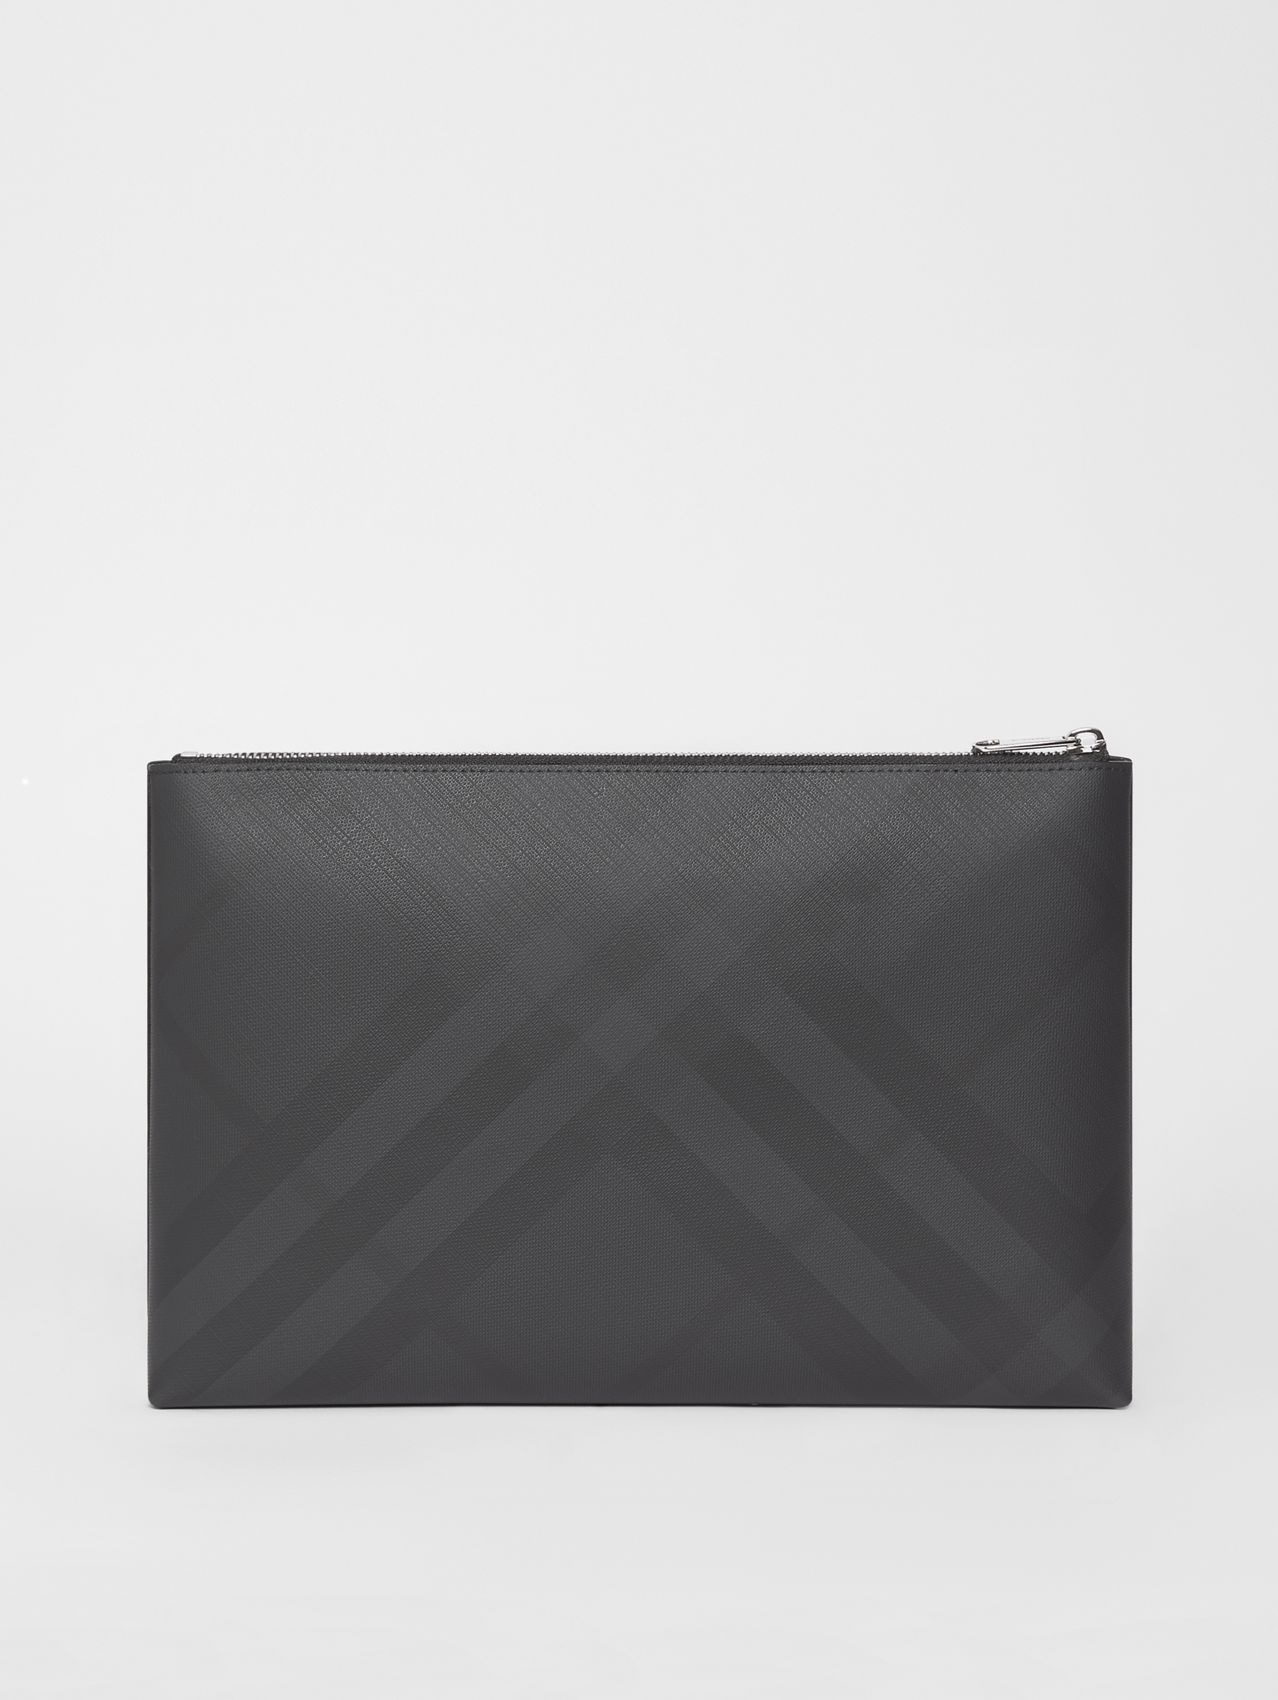 London Check Zip Pouch in Dark Charcoal